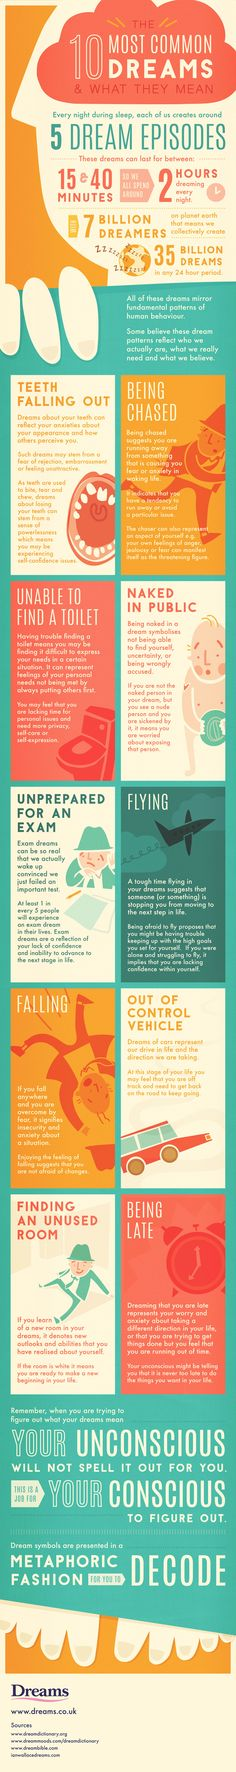 The 10 Most Common #Dreams & What They Mean - Do you fancy an infographic?  There are a lot of them online, but if you want your own please visit http://www.linfografico.com/prezzi/  Online girano molte infografiche, se ne vuoi realizzare una tutta tua visita http://www.linfografico.com/prezzi/